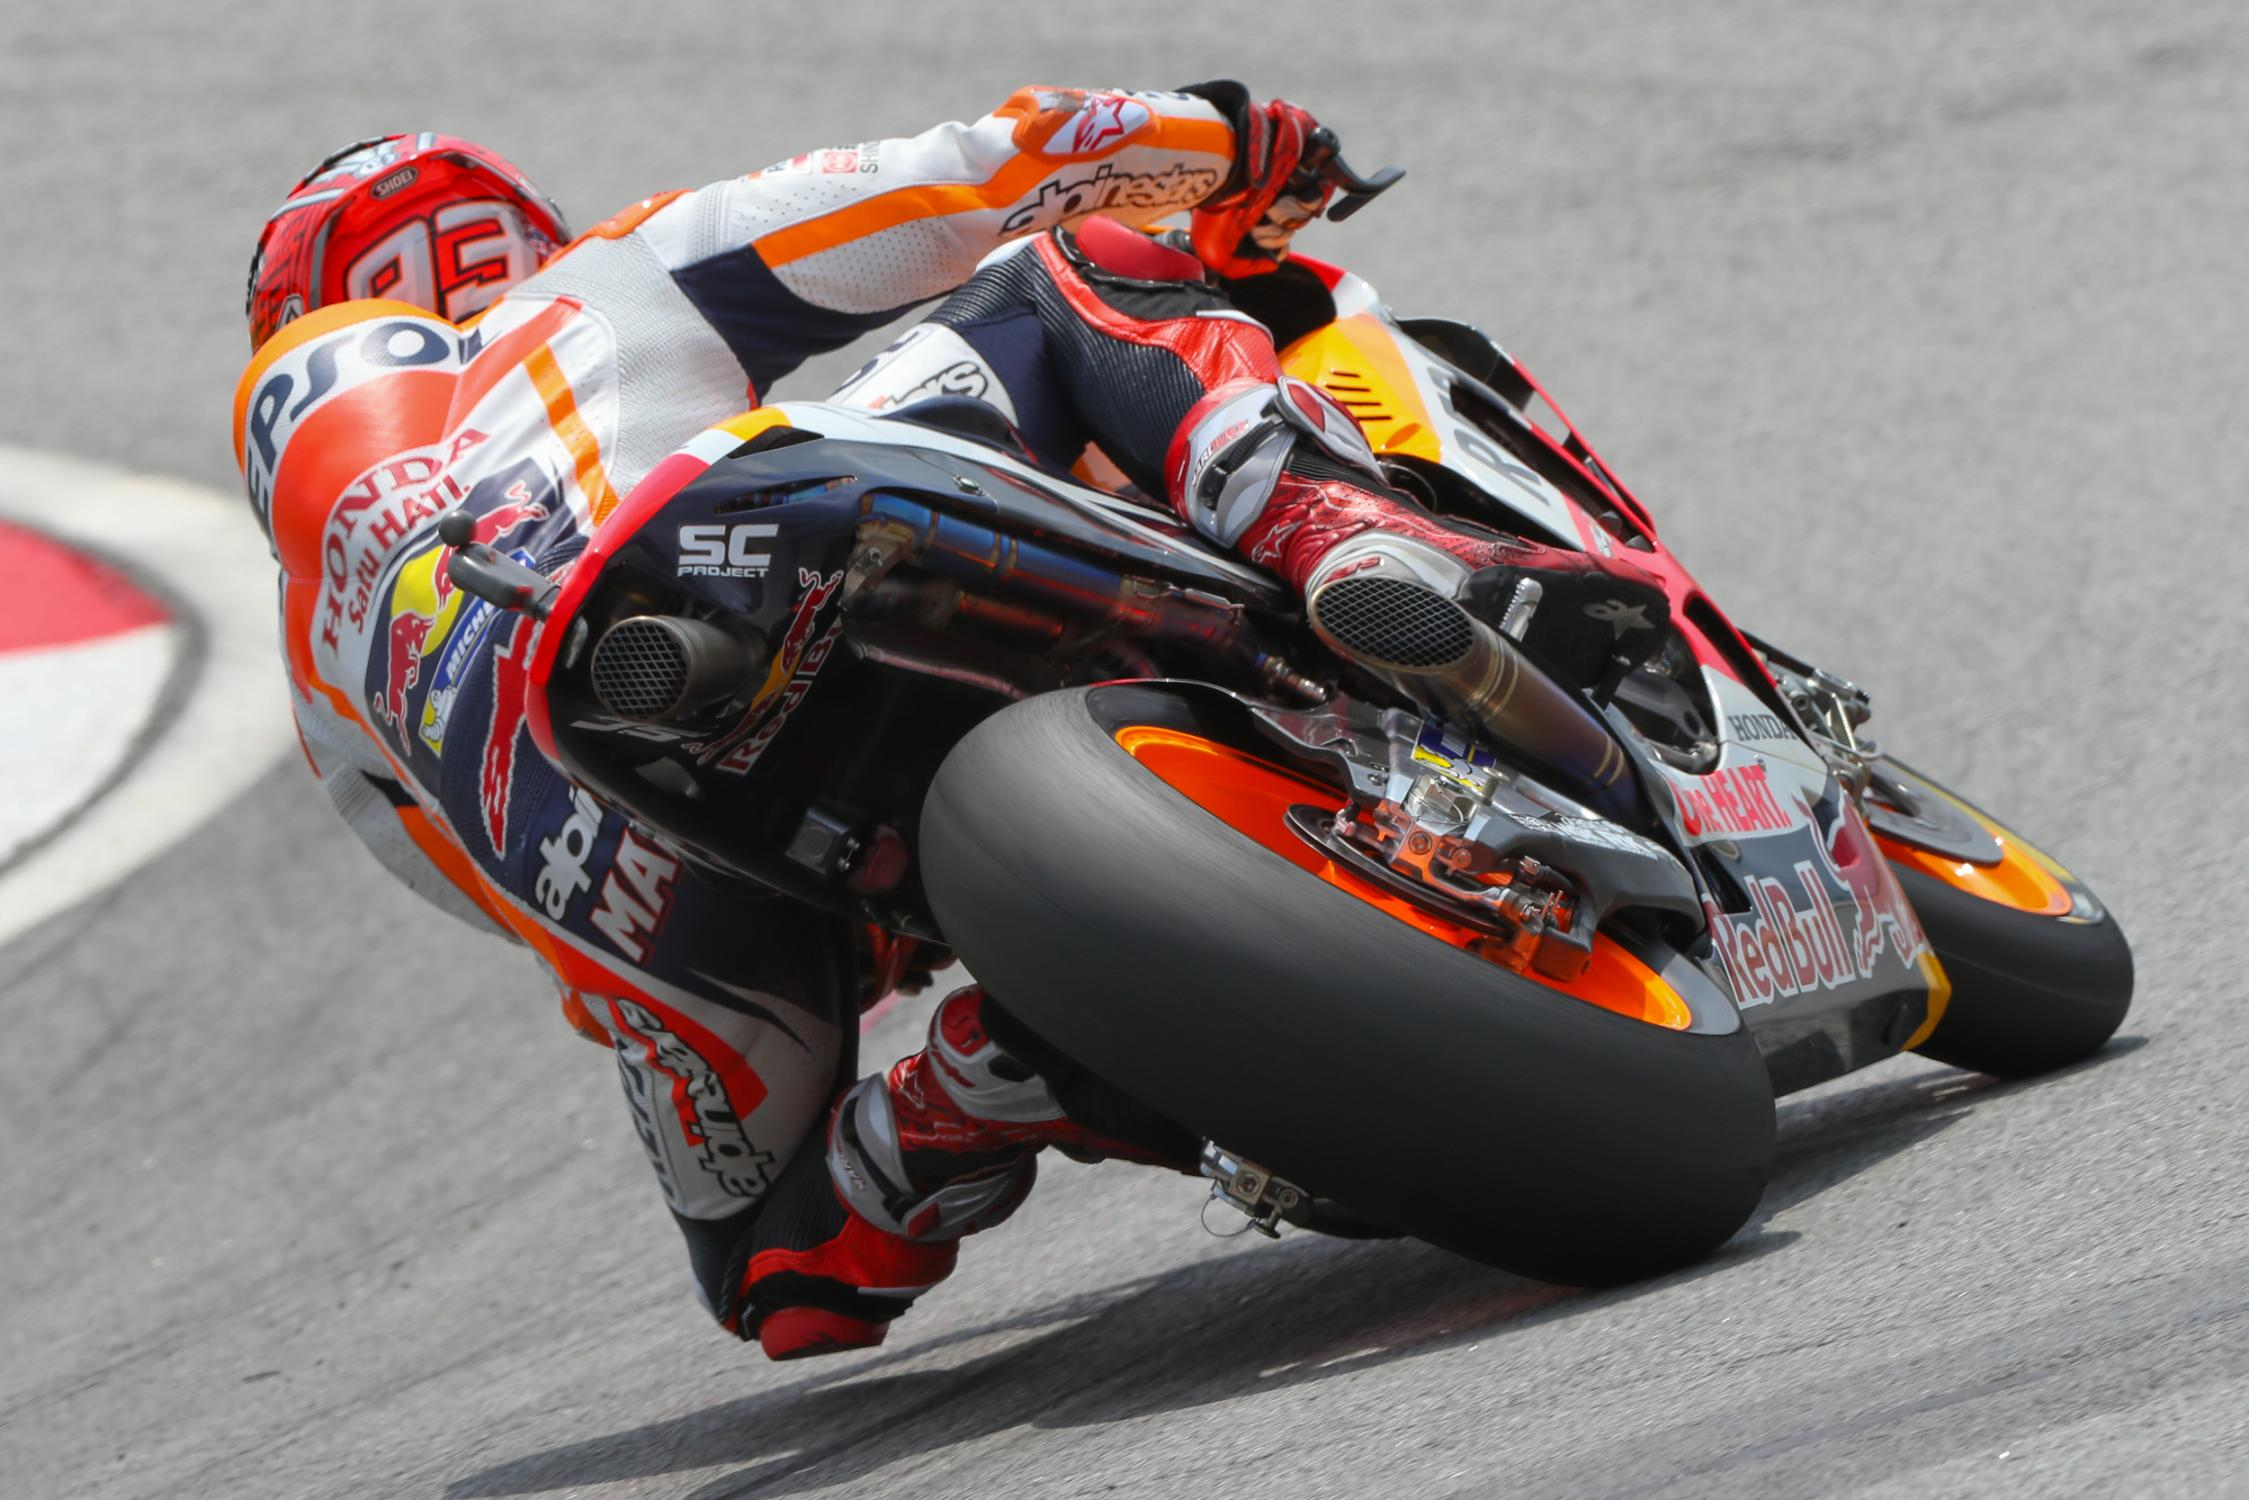 93-marc-marquez-espa81i4778.gallery_full_top_fullscreen.jpg